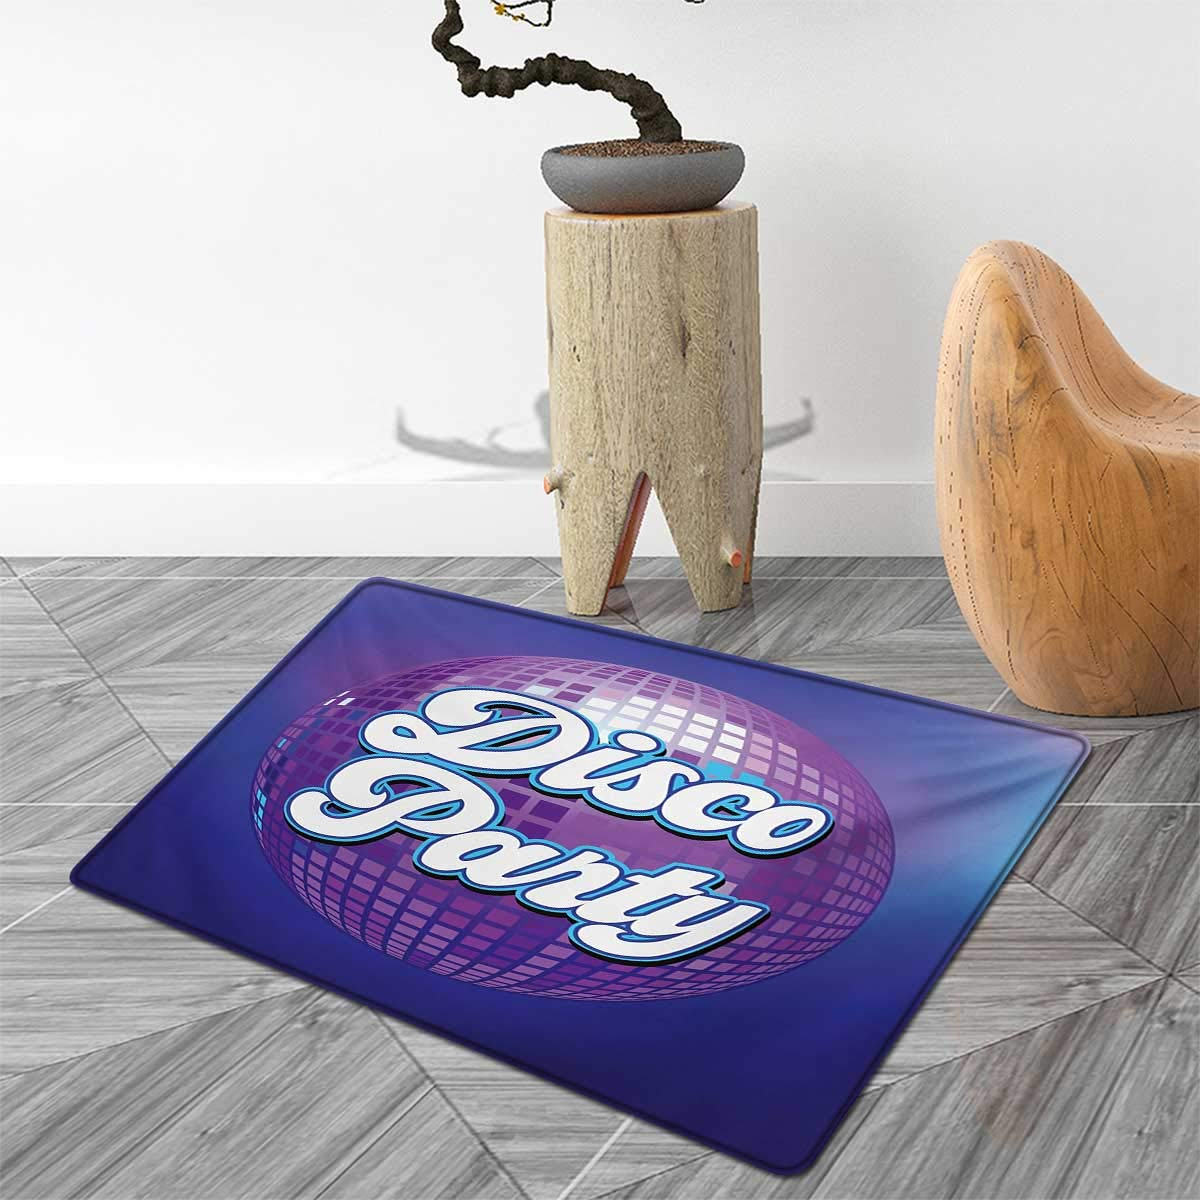 70s Party Door Mats for Home Retro Lettering on Disco Ball Night Club Theme Dance and Music Art Print Bath Mat Bathroom Mat with Non Slip 4'x5' Purple Blue White